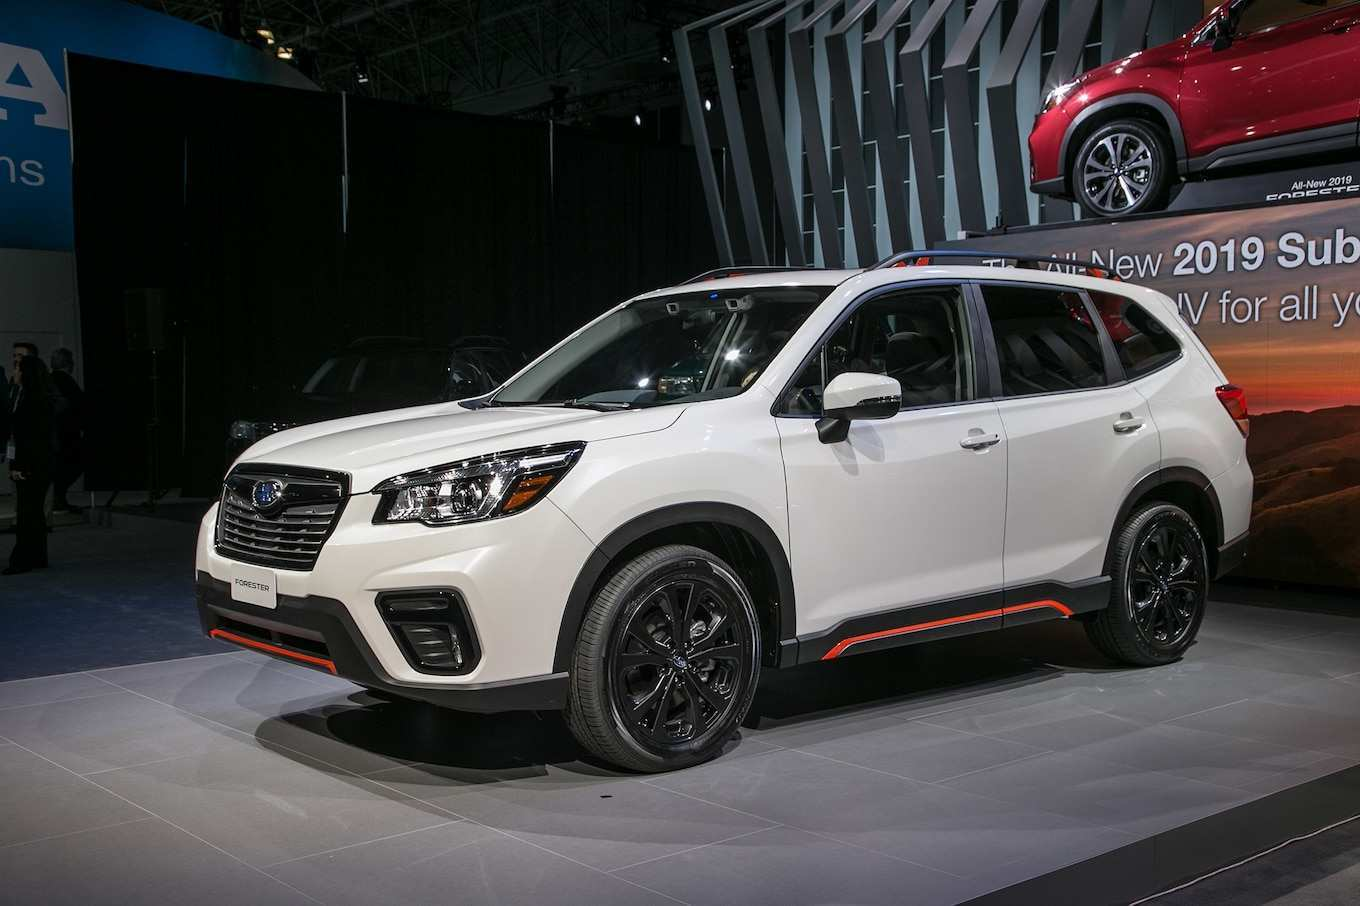 87 Great 2019 Subaru Forester Spy Photos Images by 2019 Subaru Forester Spy Photos